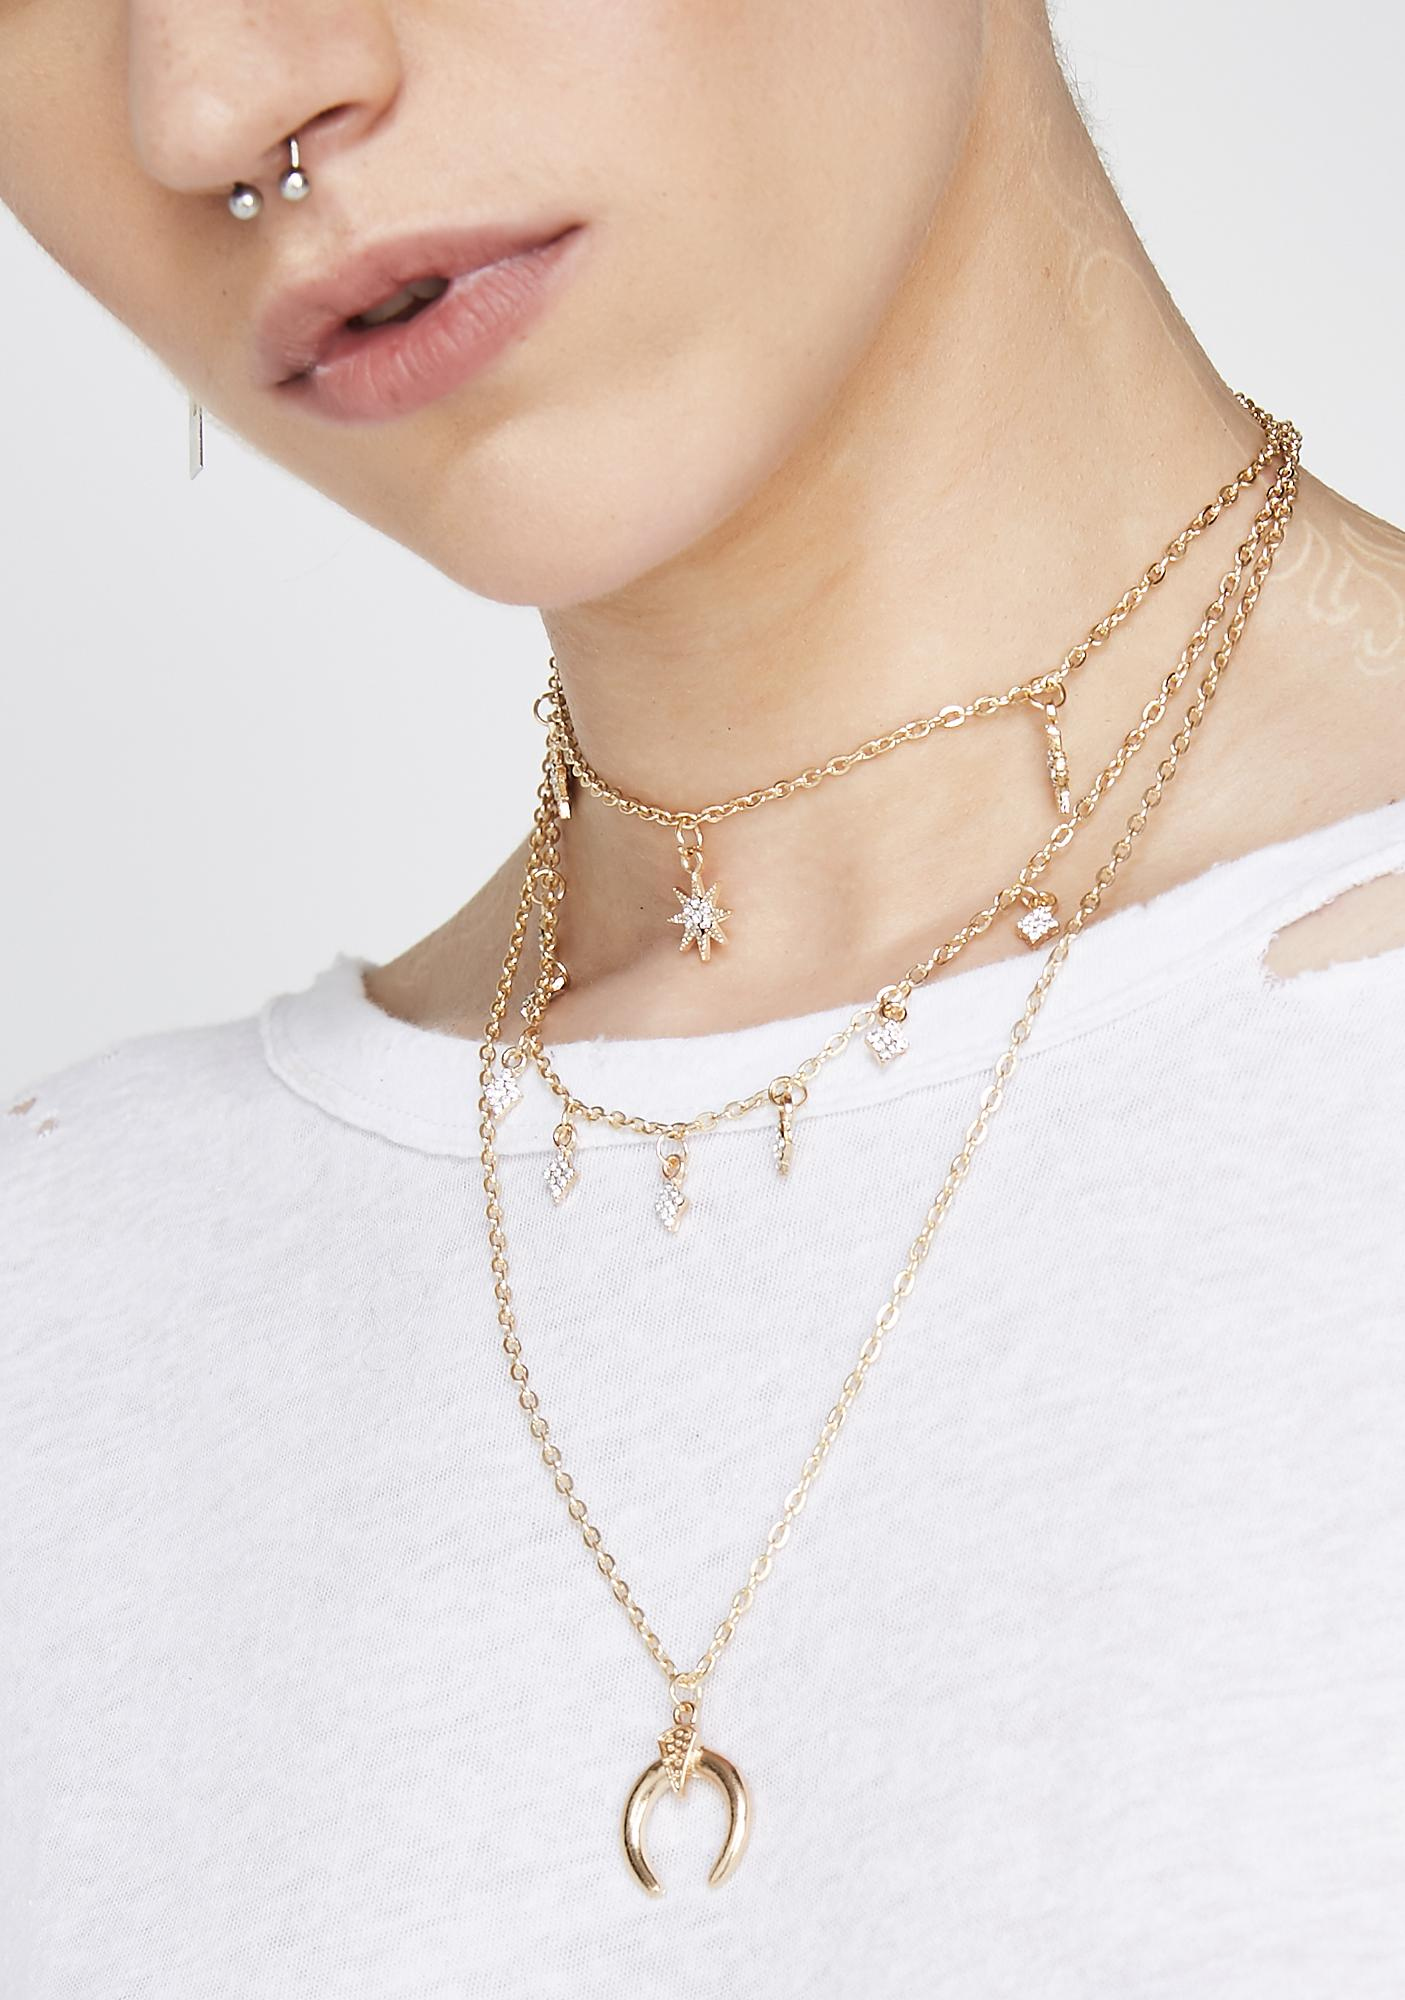 In The Stars Layered Necklace by Illuma Fashion